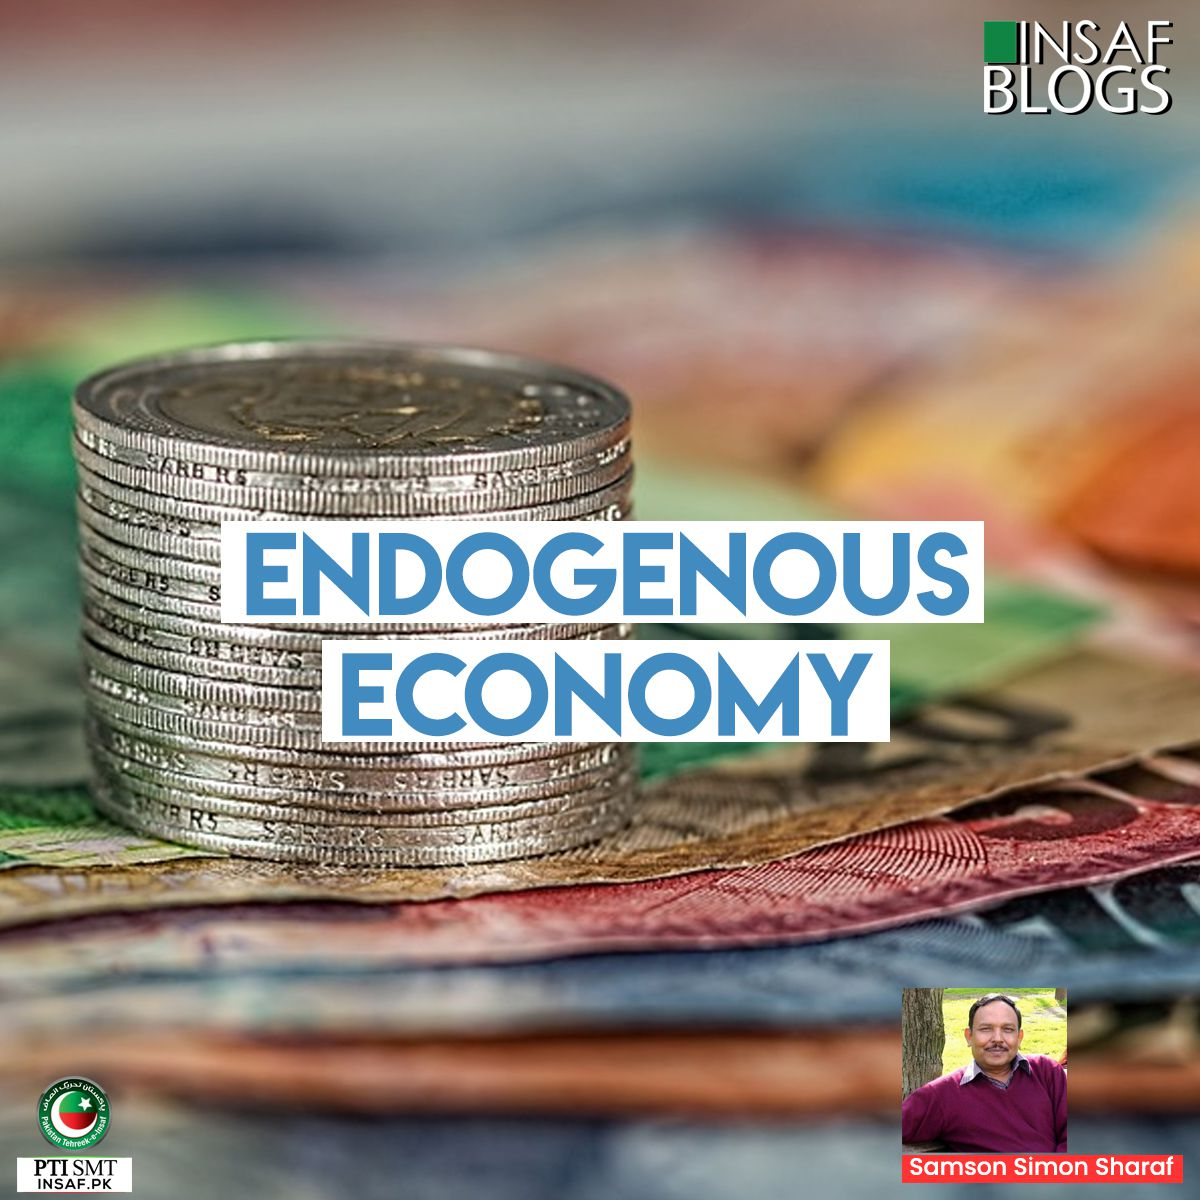 ENDOGENOUS ECONOMY - Insaf-Blog